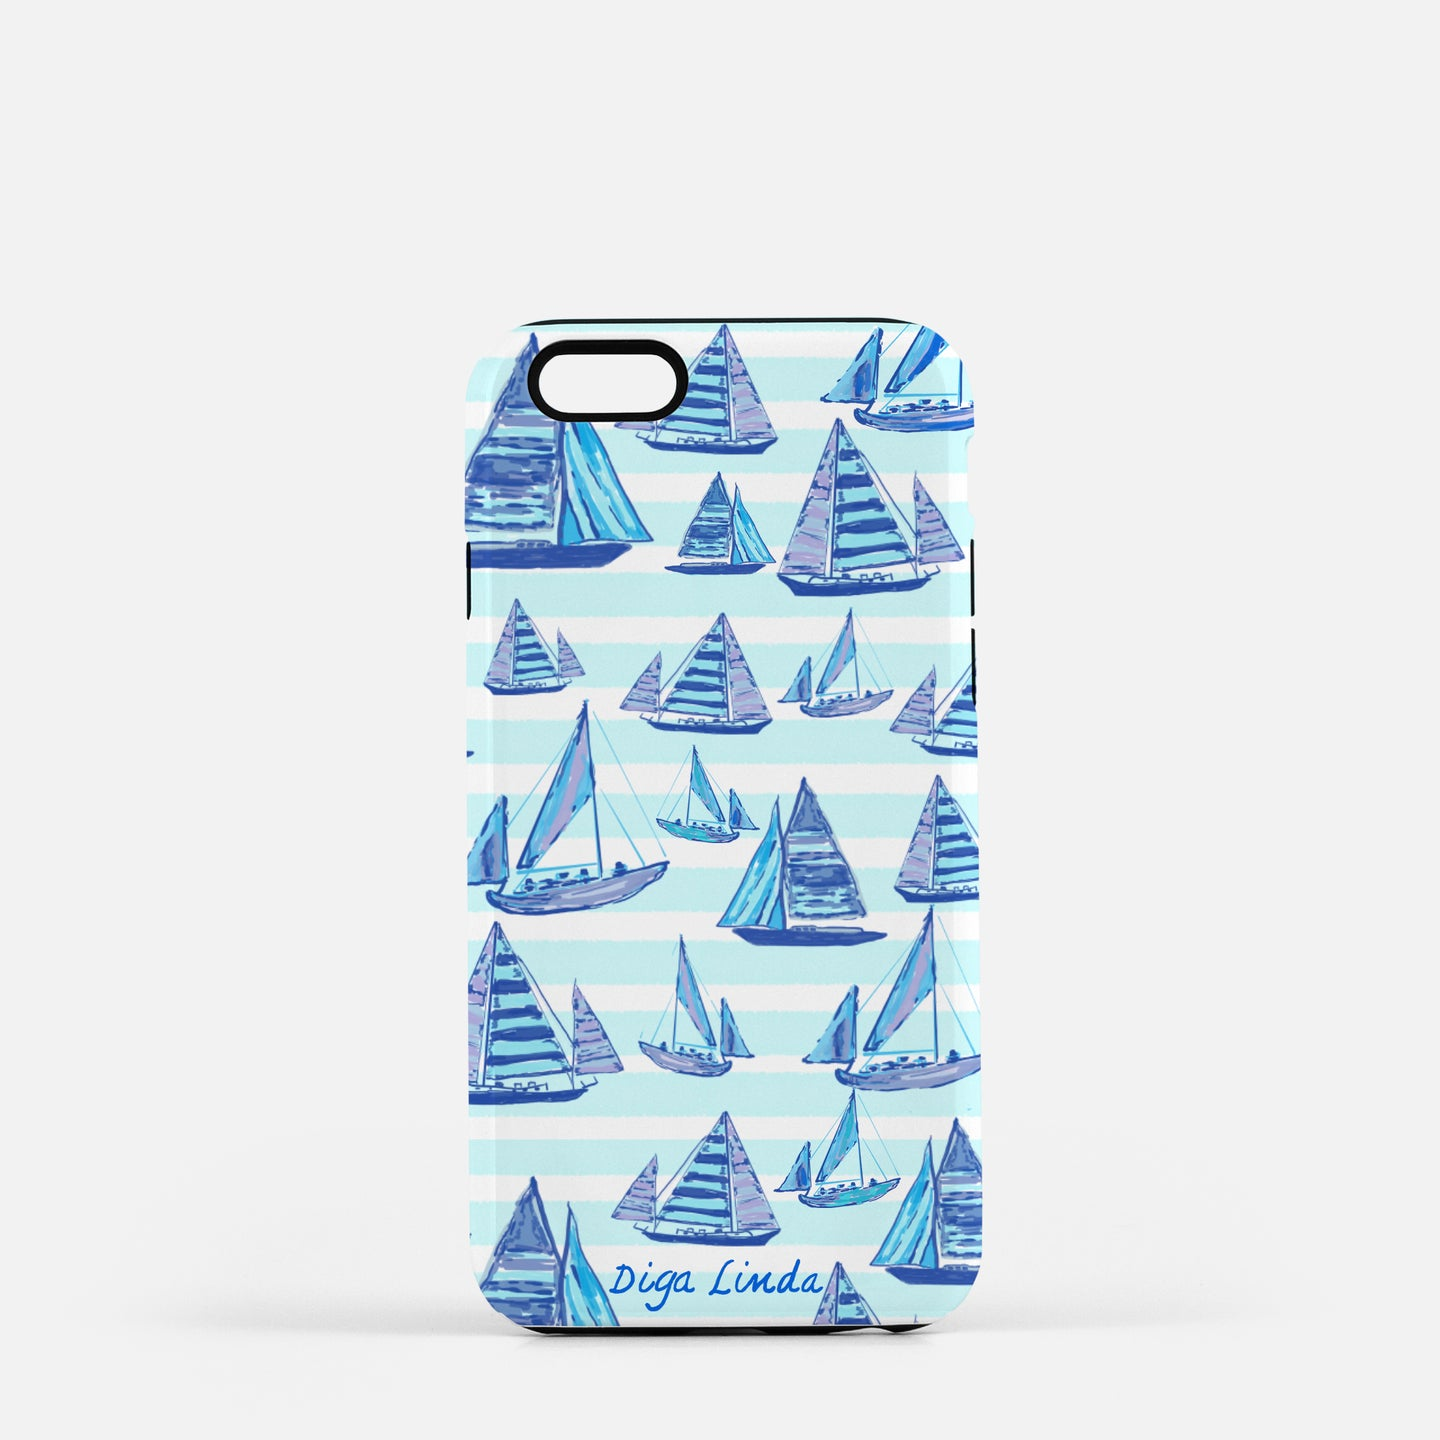 Tough Phone Case in the Sail Away Print - Diga Linda